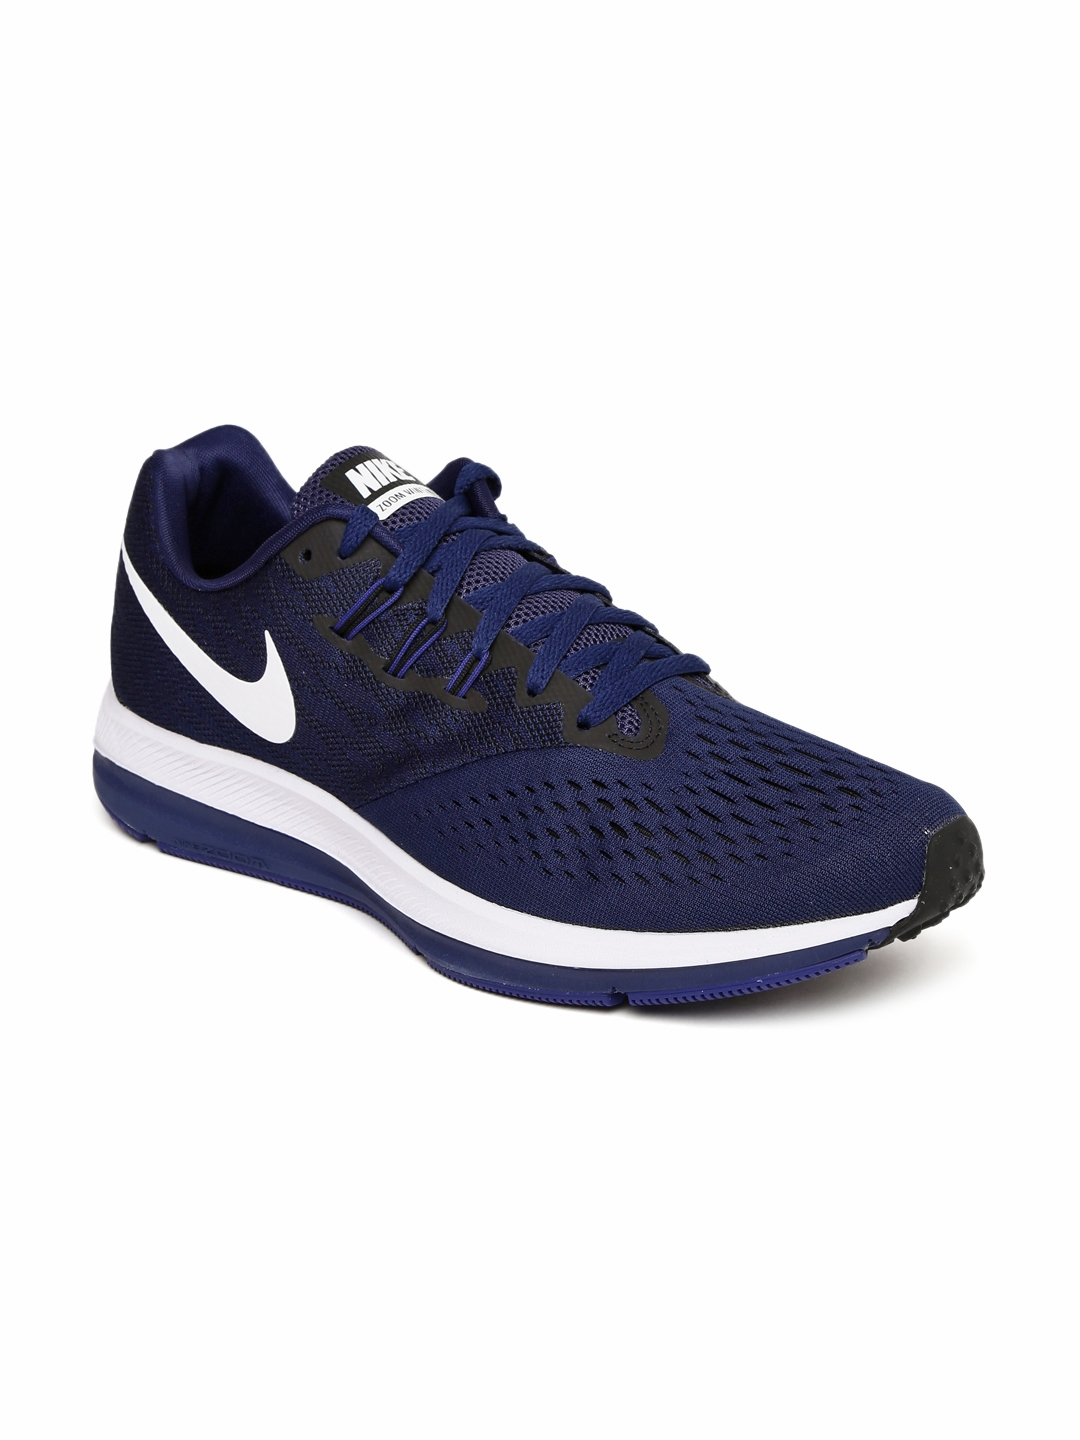 5afd4e72d930c Buy Nike Men Navy Blue ZOOM WINFLO 4 Running Shoes - Sports Shoes ...